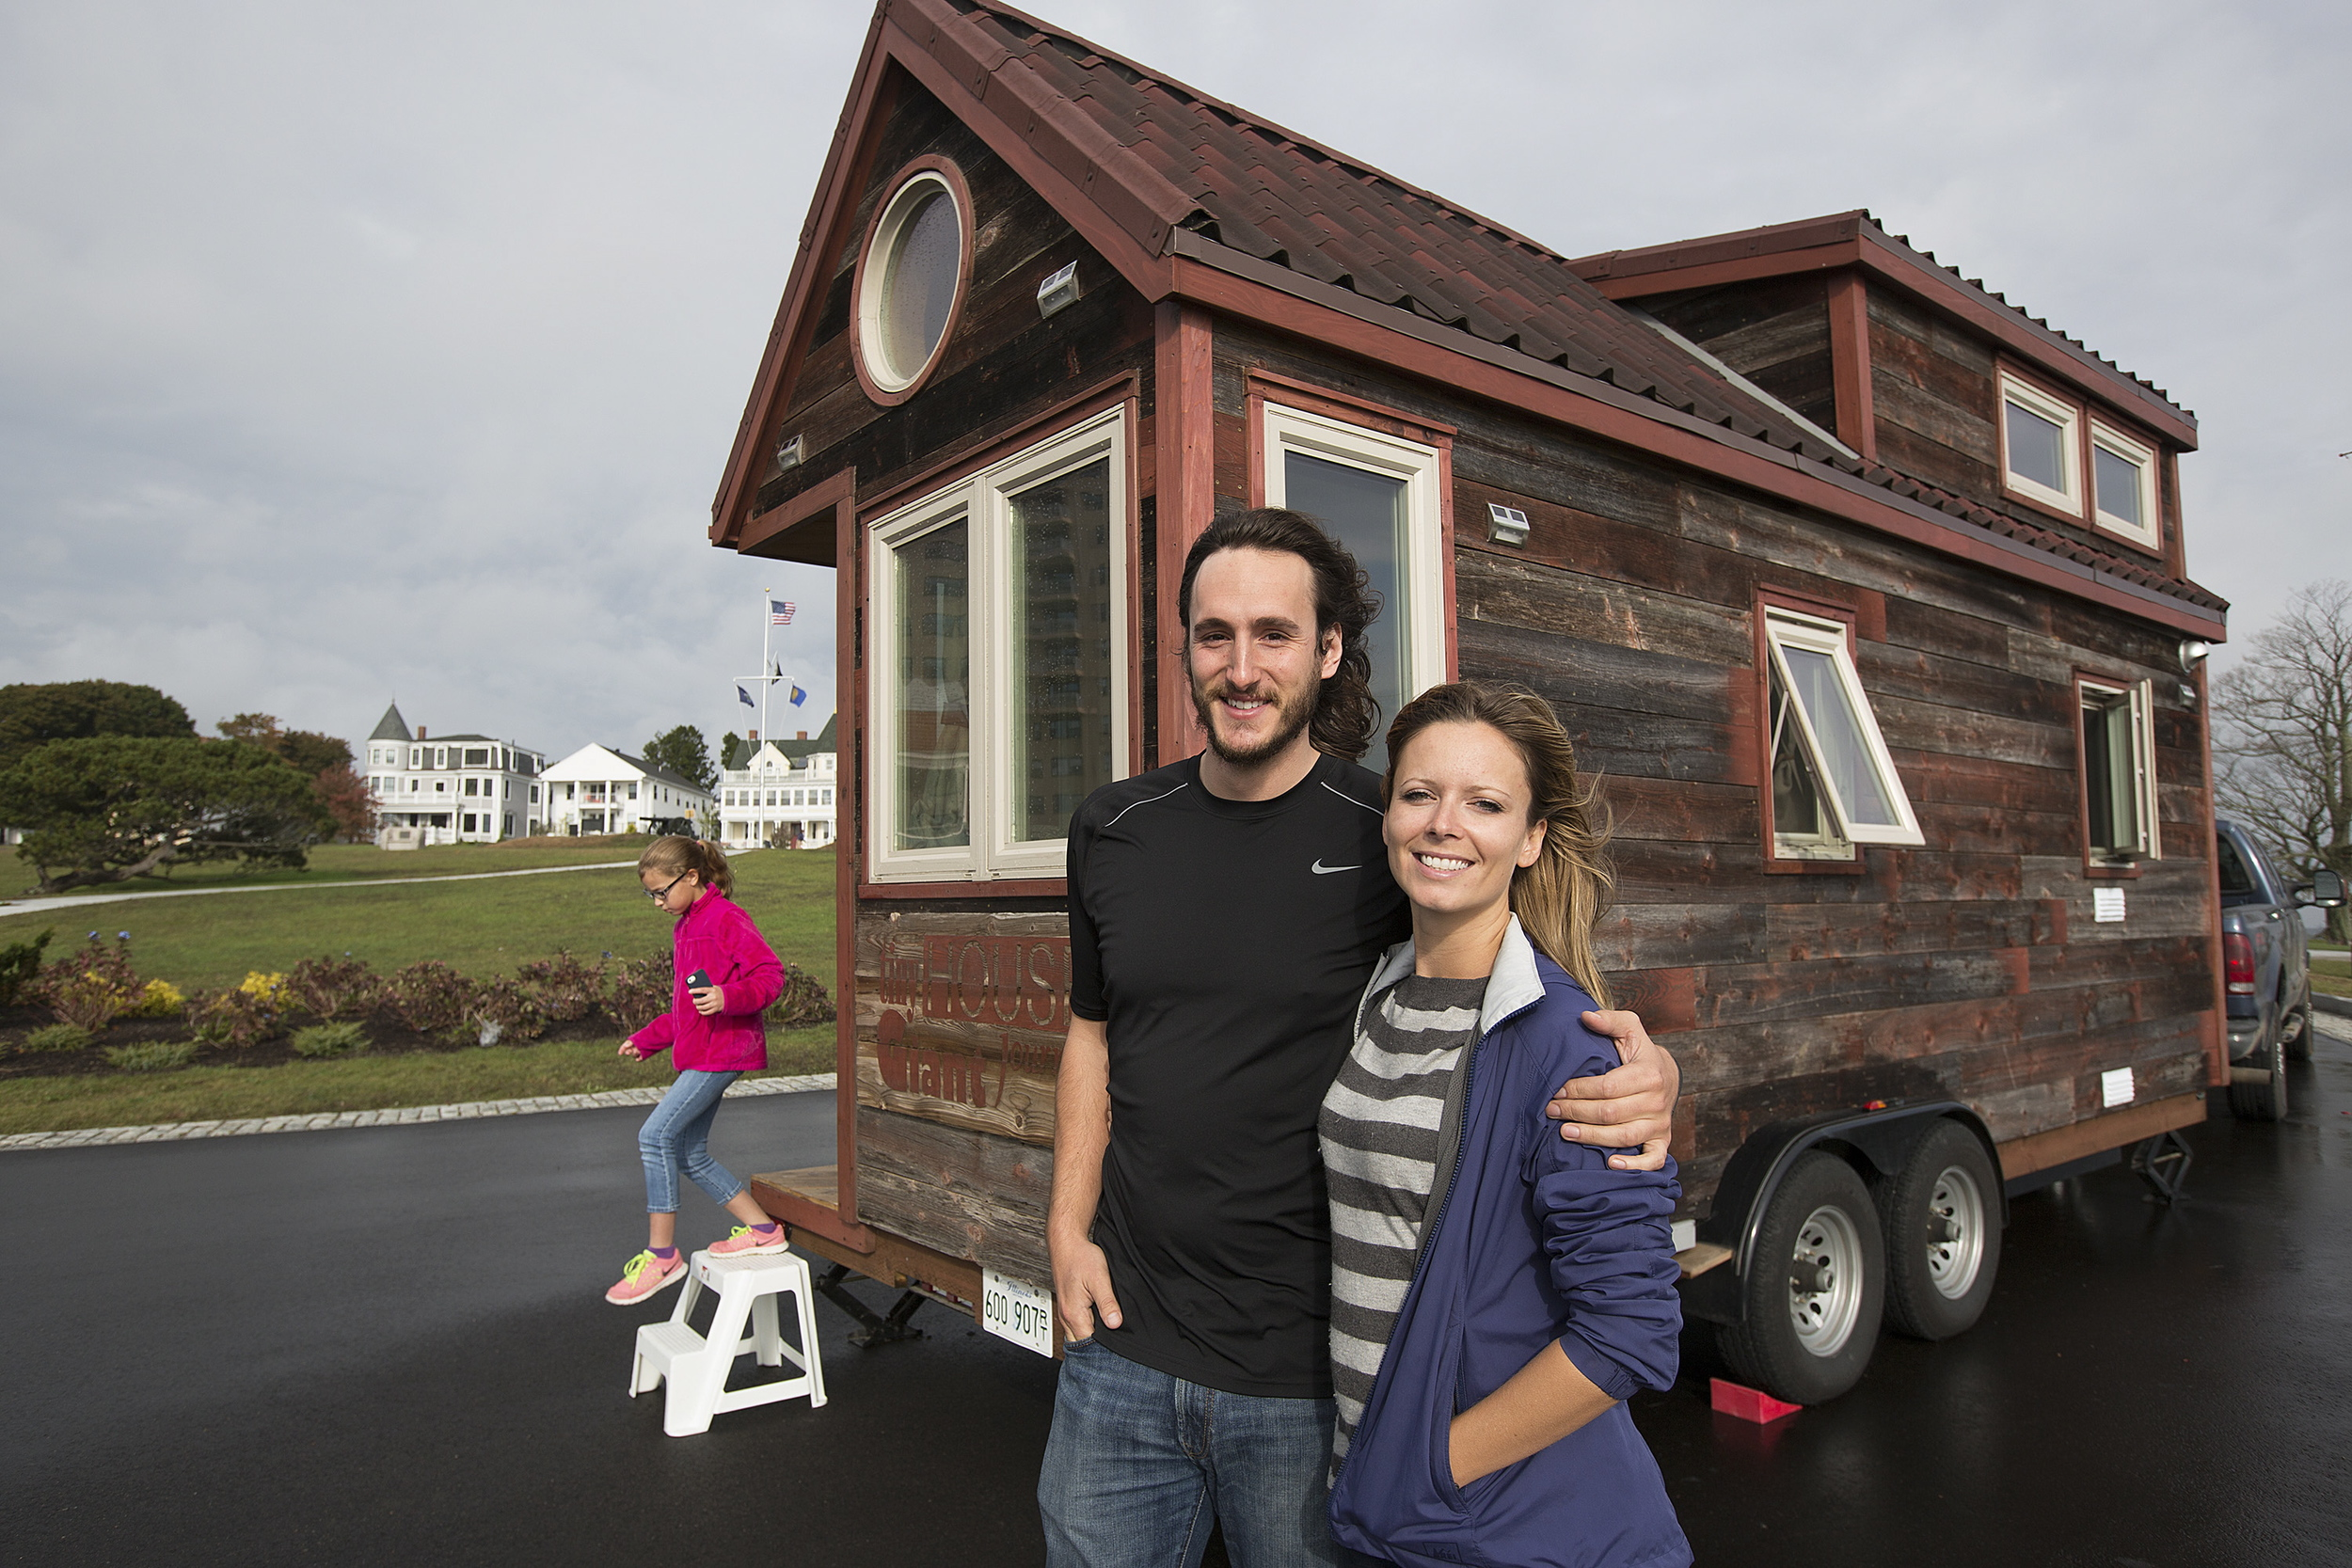 The Tiny House movement and sharing economy have much in common.